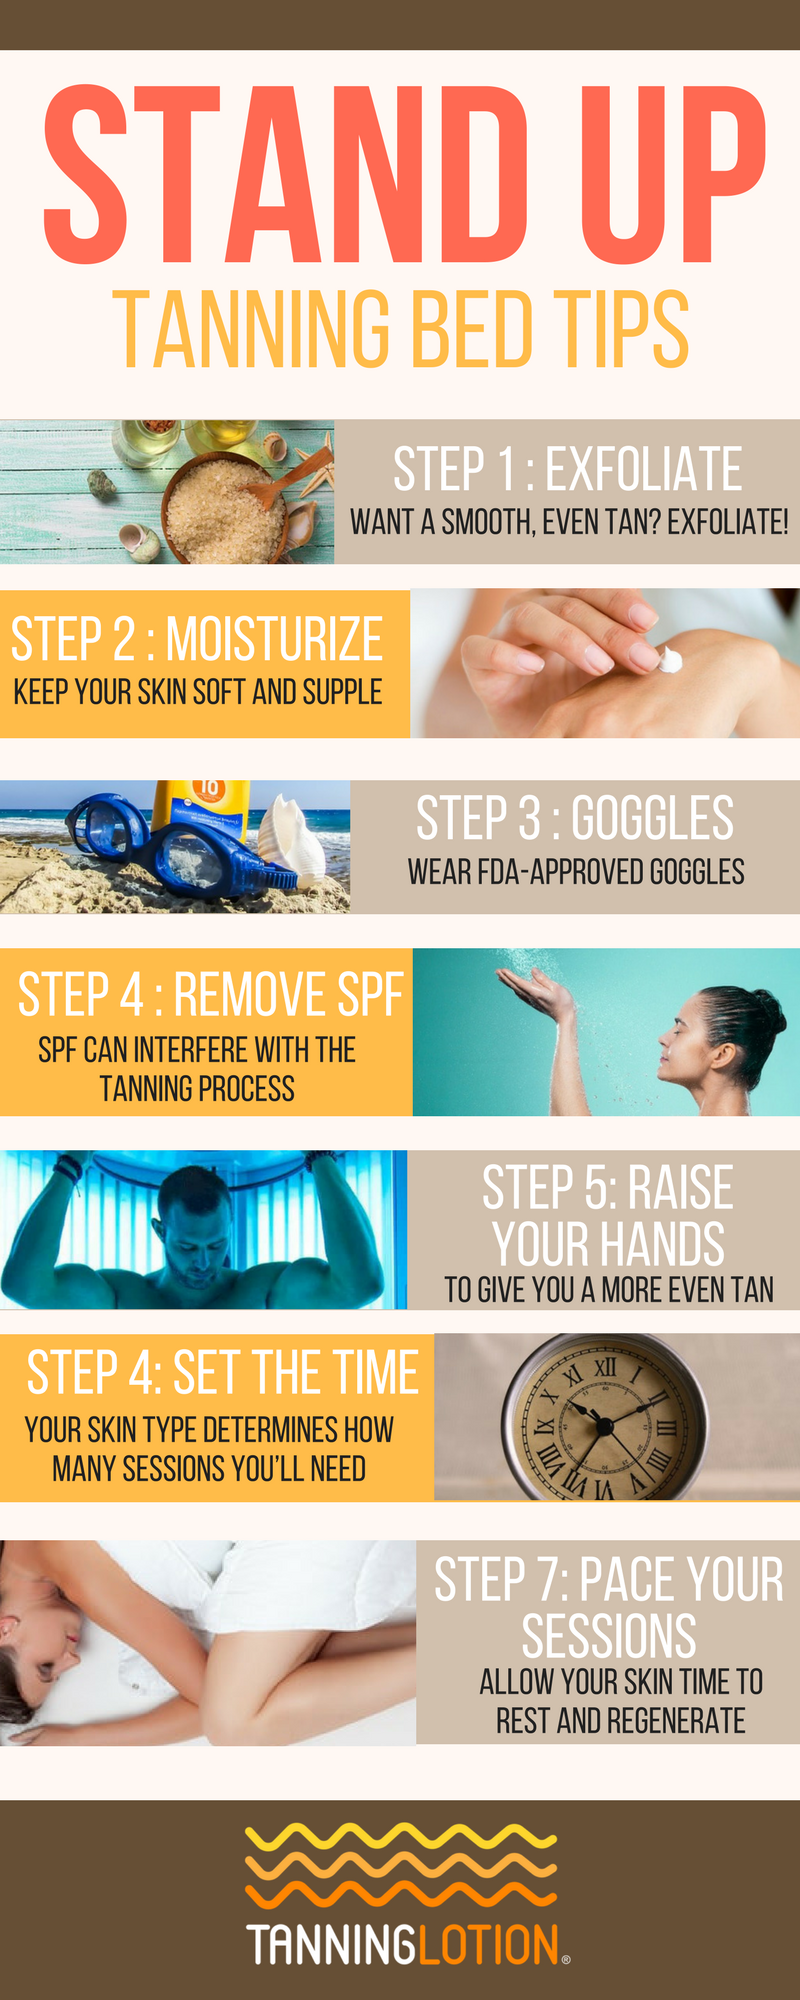 Stand Up Tanning With Images Tanning Bed Tips